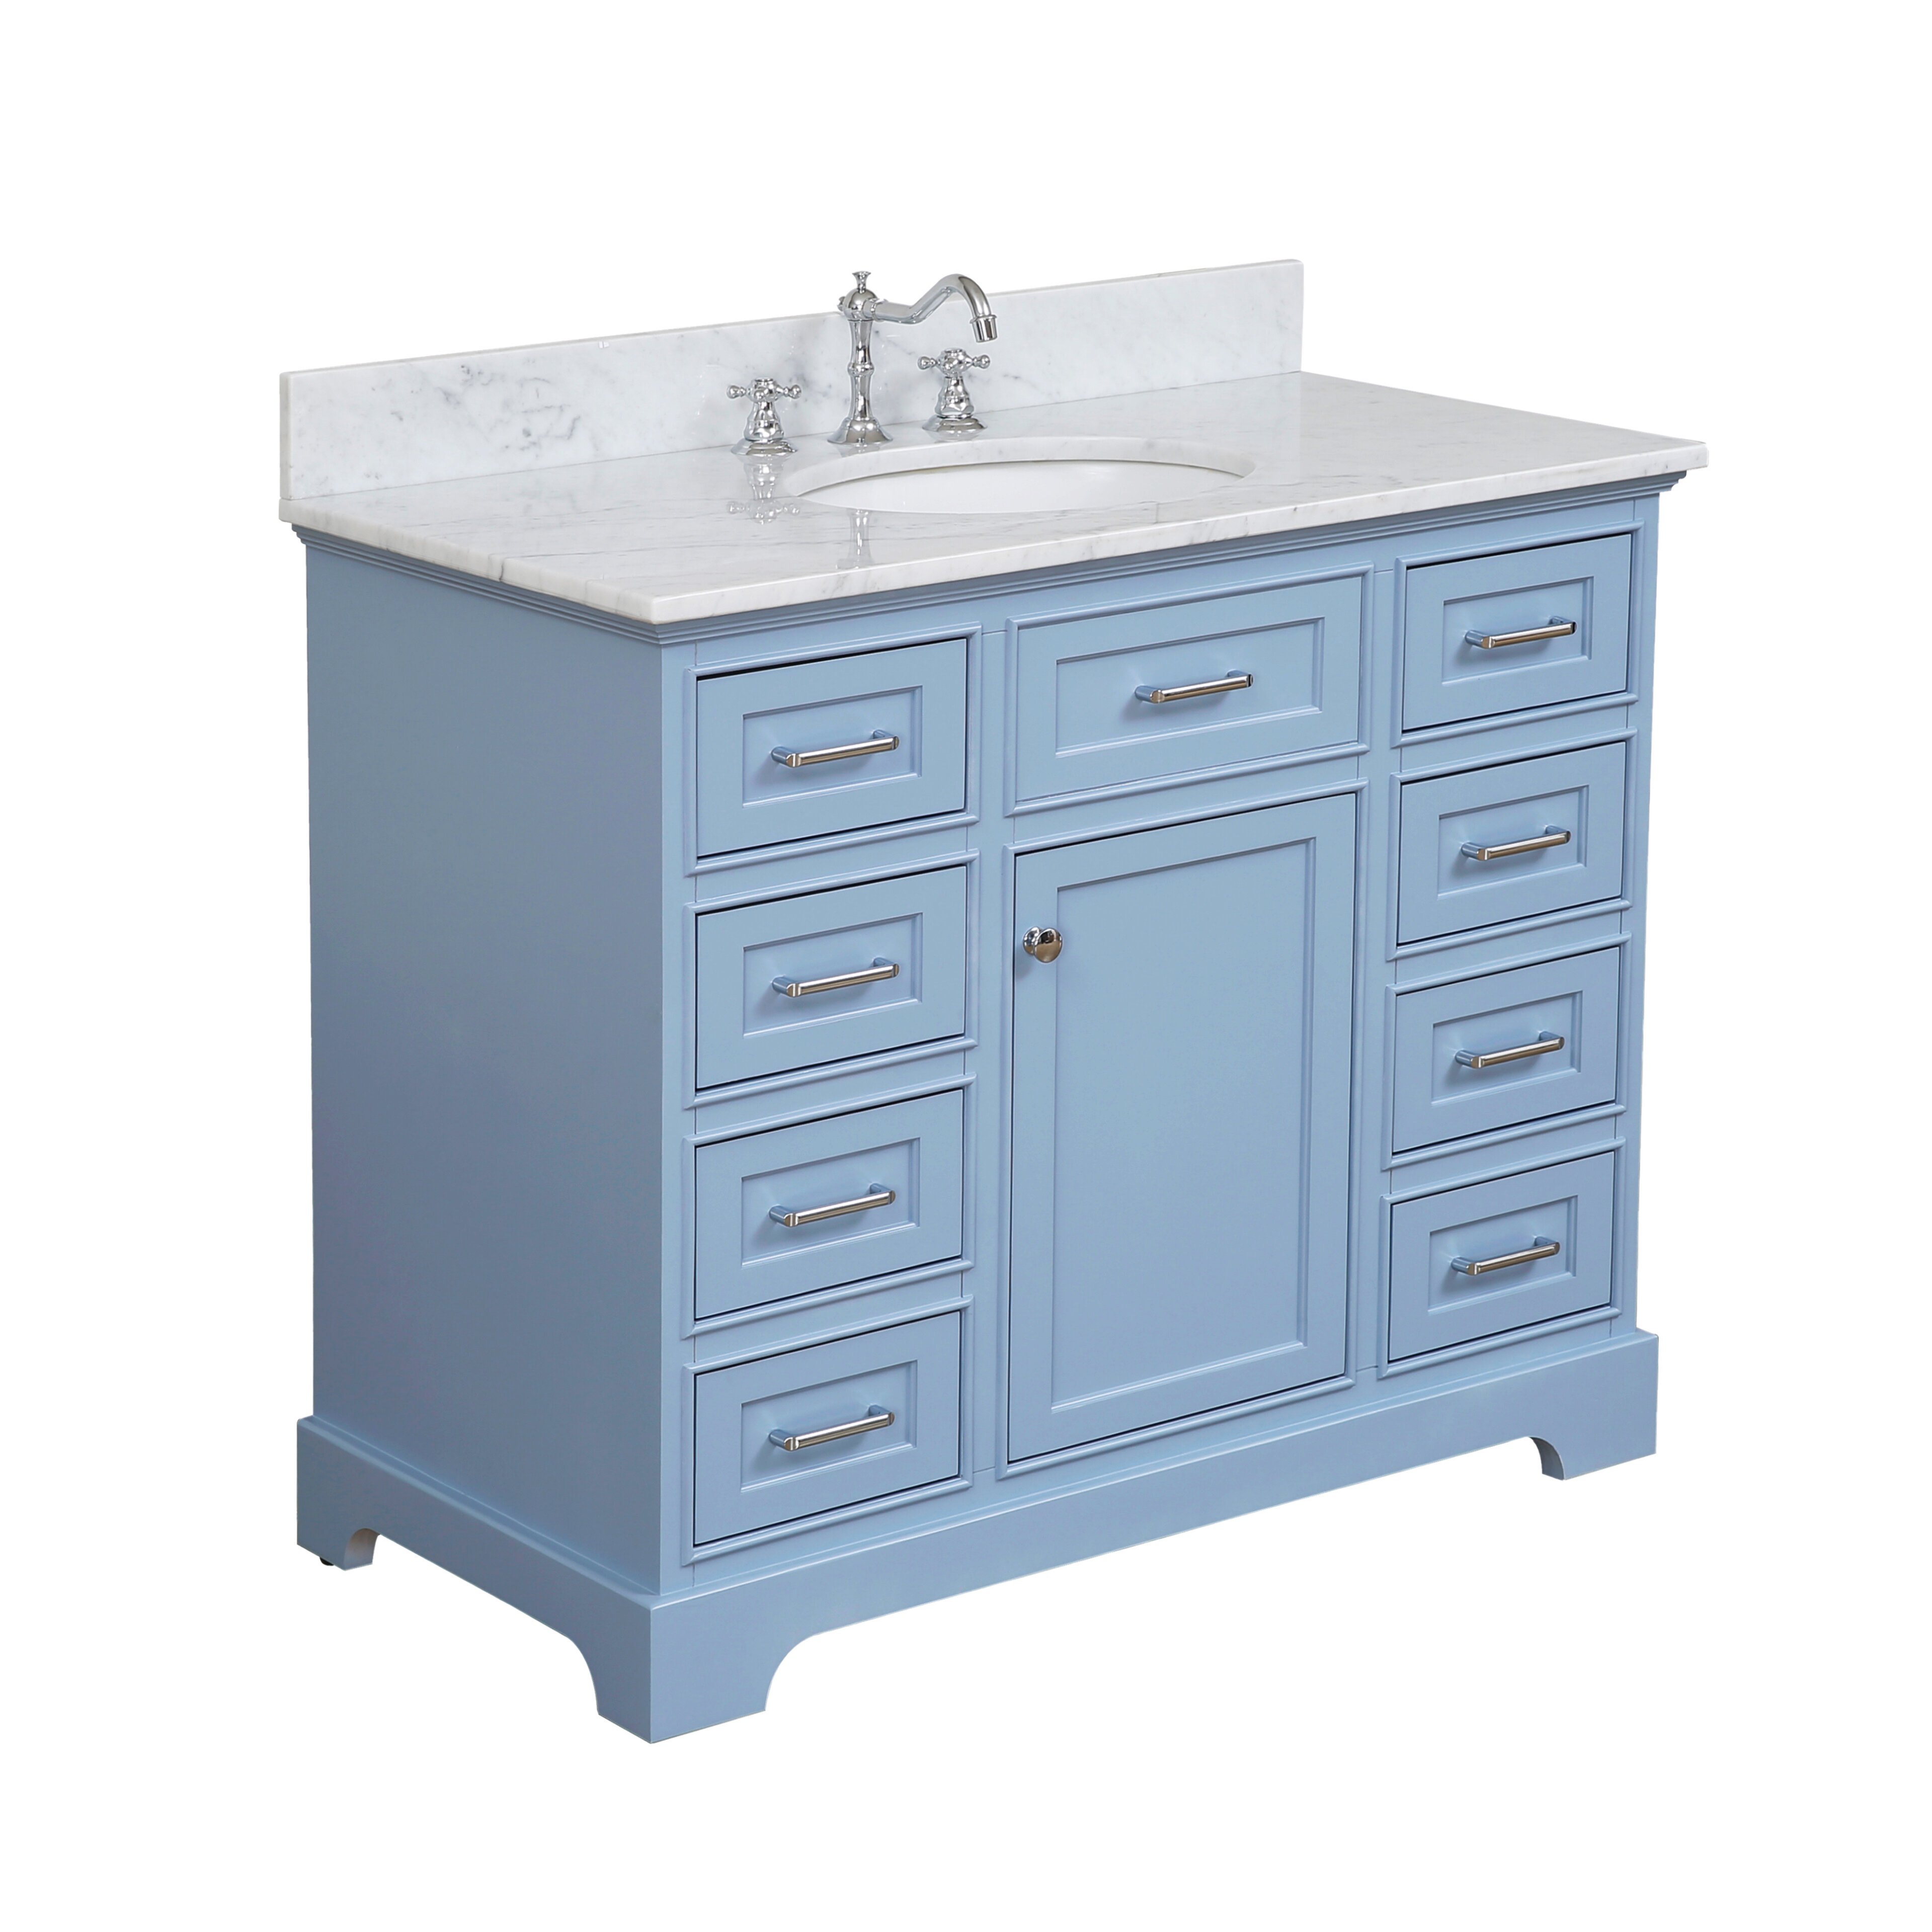 Bathroom Vanities Tools Home Improvement Katherine 72 Inch Double Bathroom Vanity Carrara Royal Blue Includes Royal Blue Cabinet With Authentic Italian Carrara Marble Countertop And White Ceramic Sinks